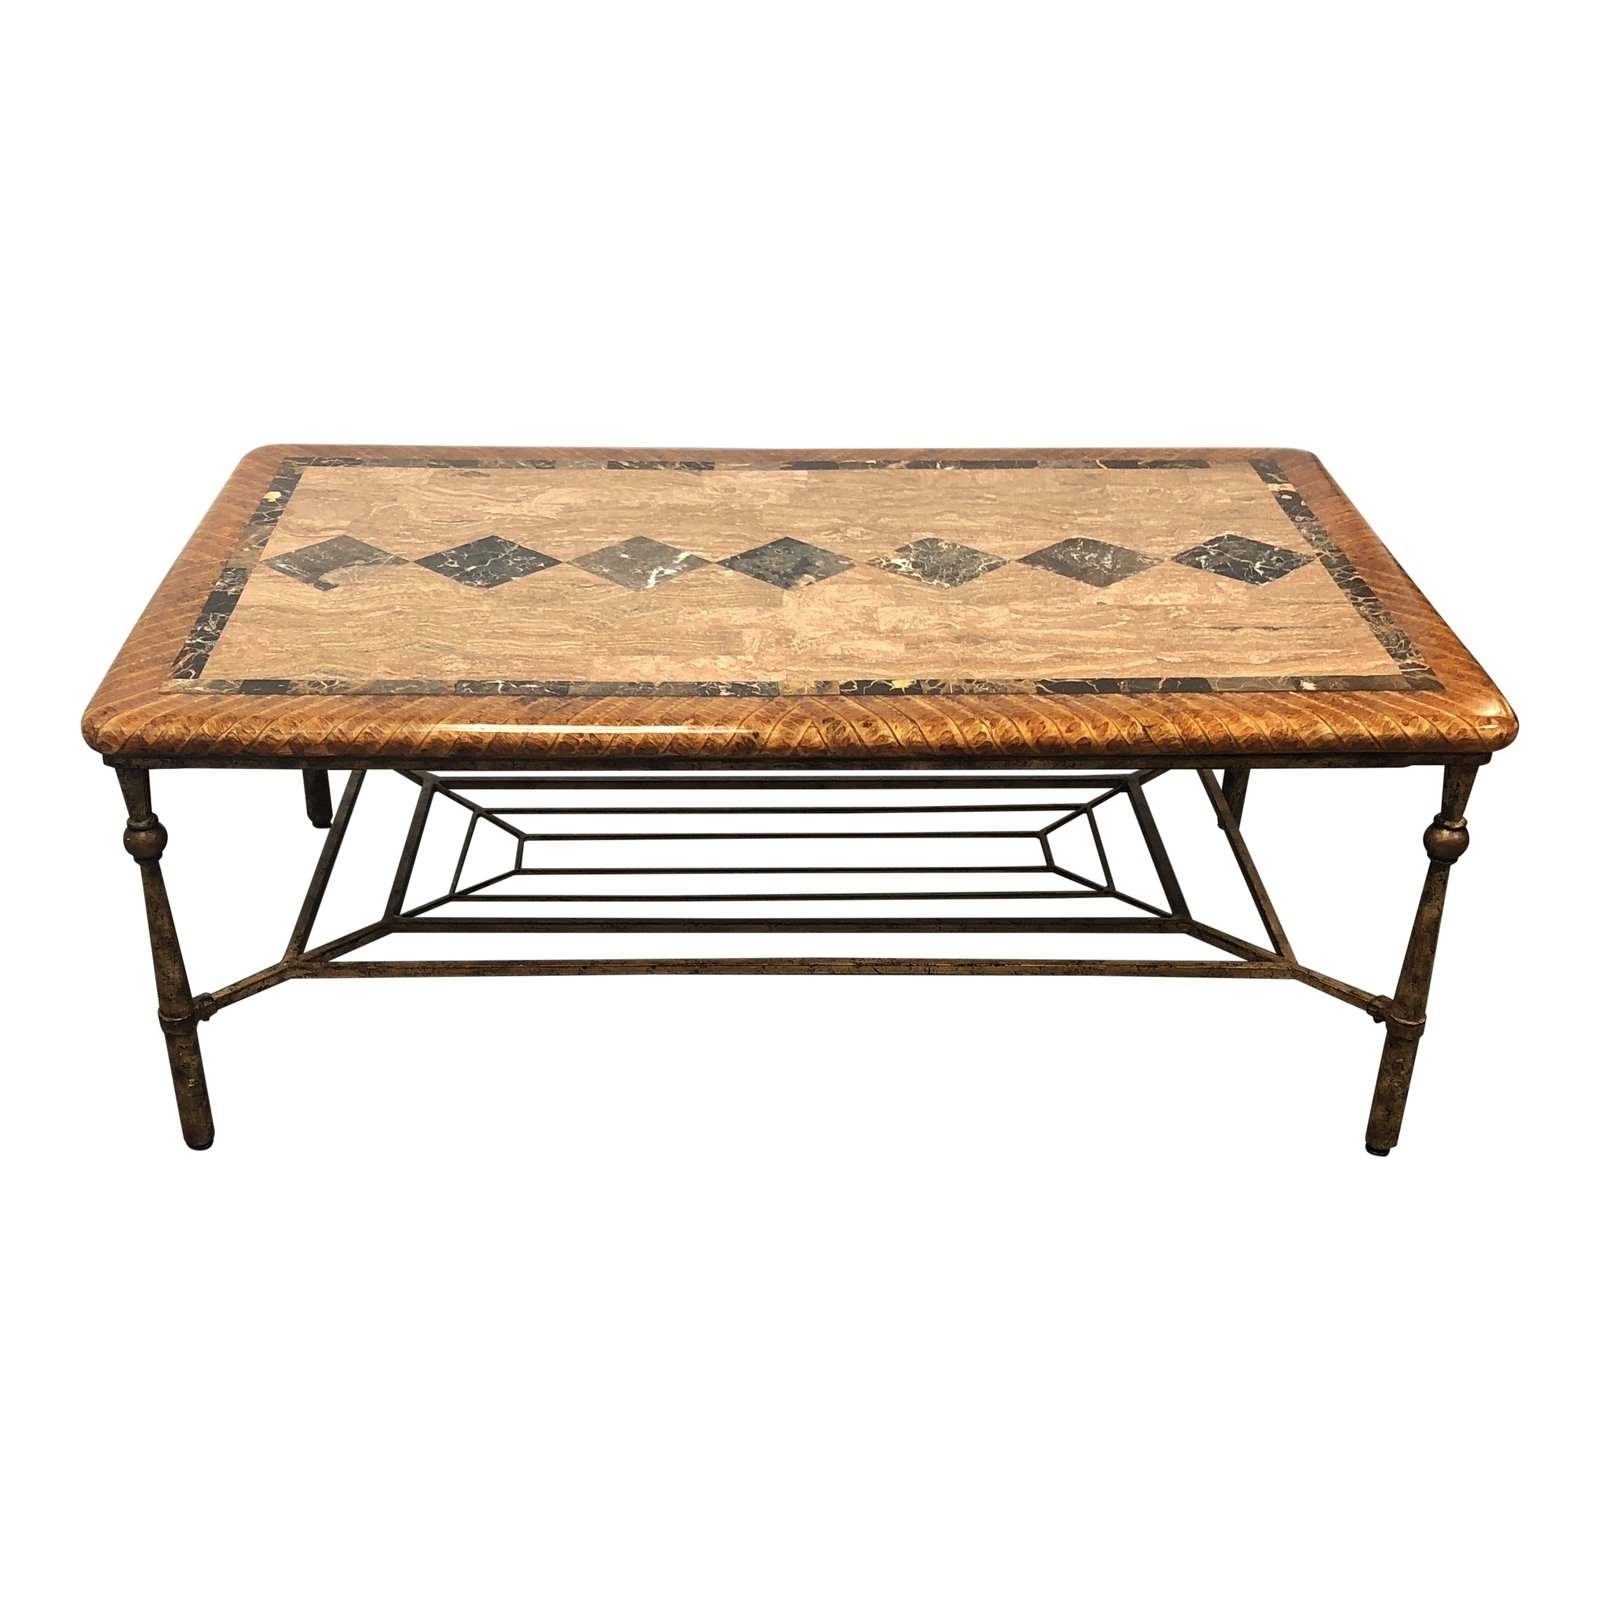 Hooker Furniture Stone Top Coffee Table – Design Plus Gallery Pertaining To Preferred Stone Top Coffee Tables (Gallery 9 of 20)